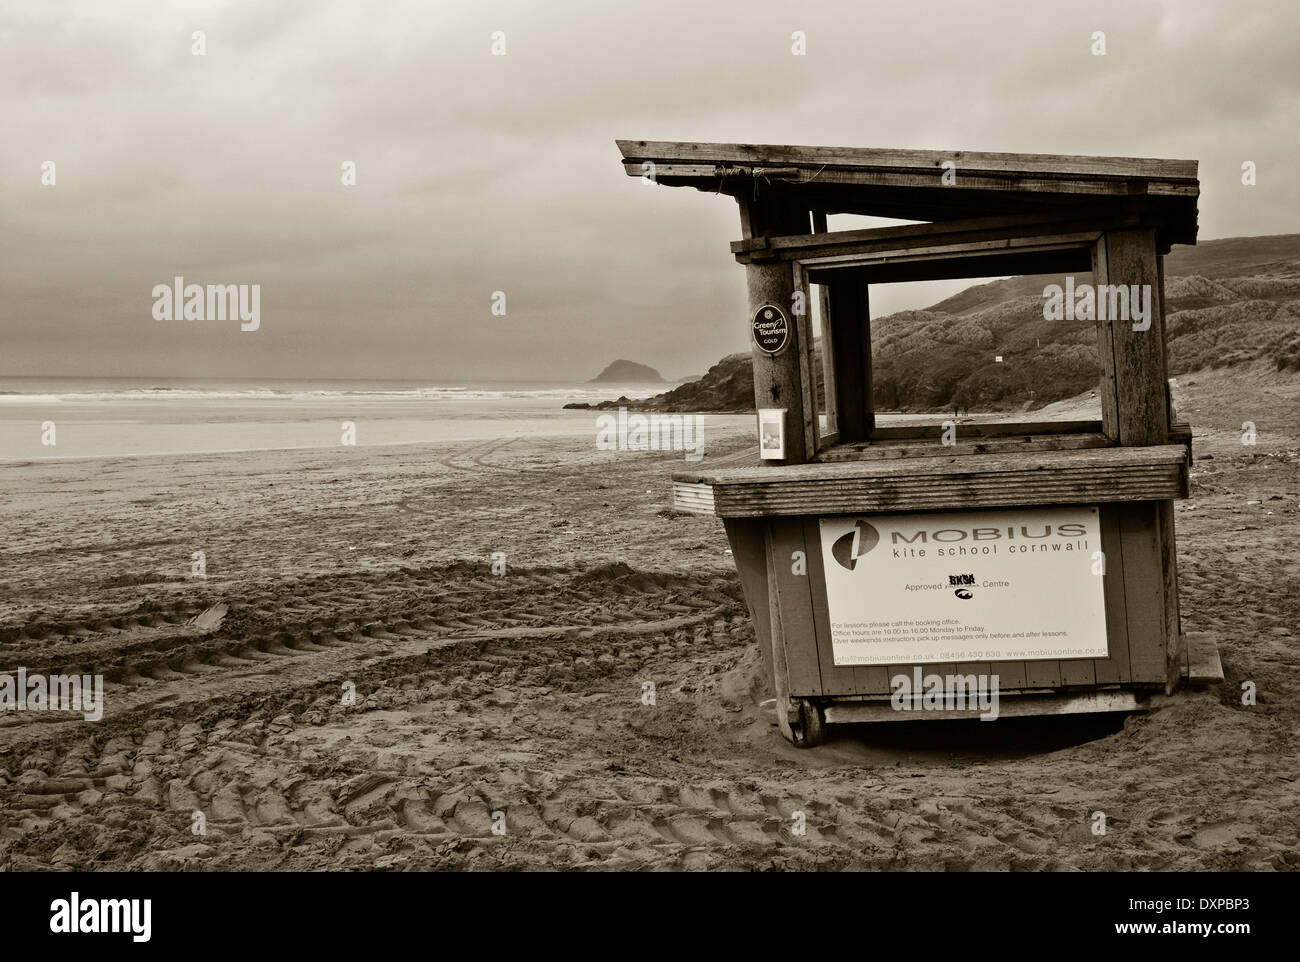 Peranporth beach with deserted wooden kiosk, Black and white image - Stock Image